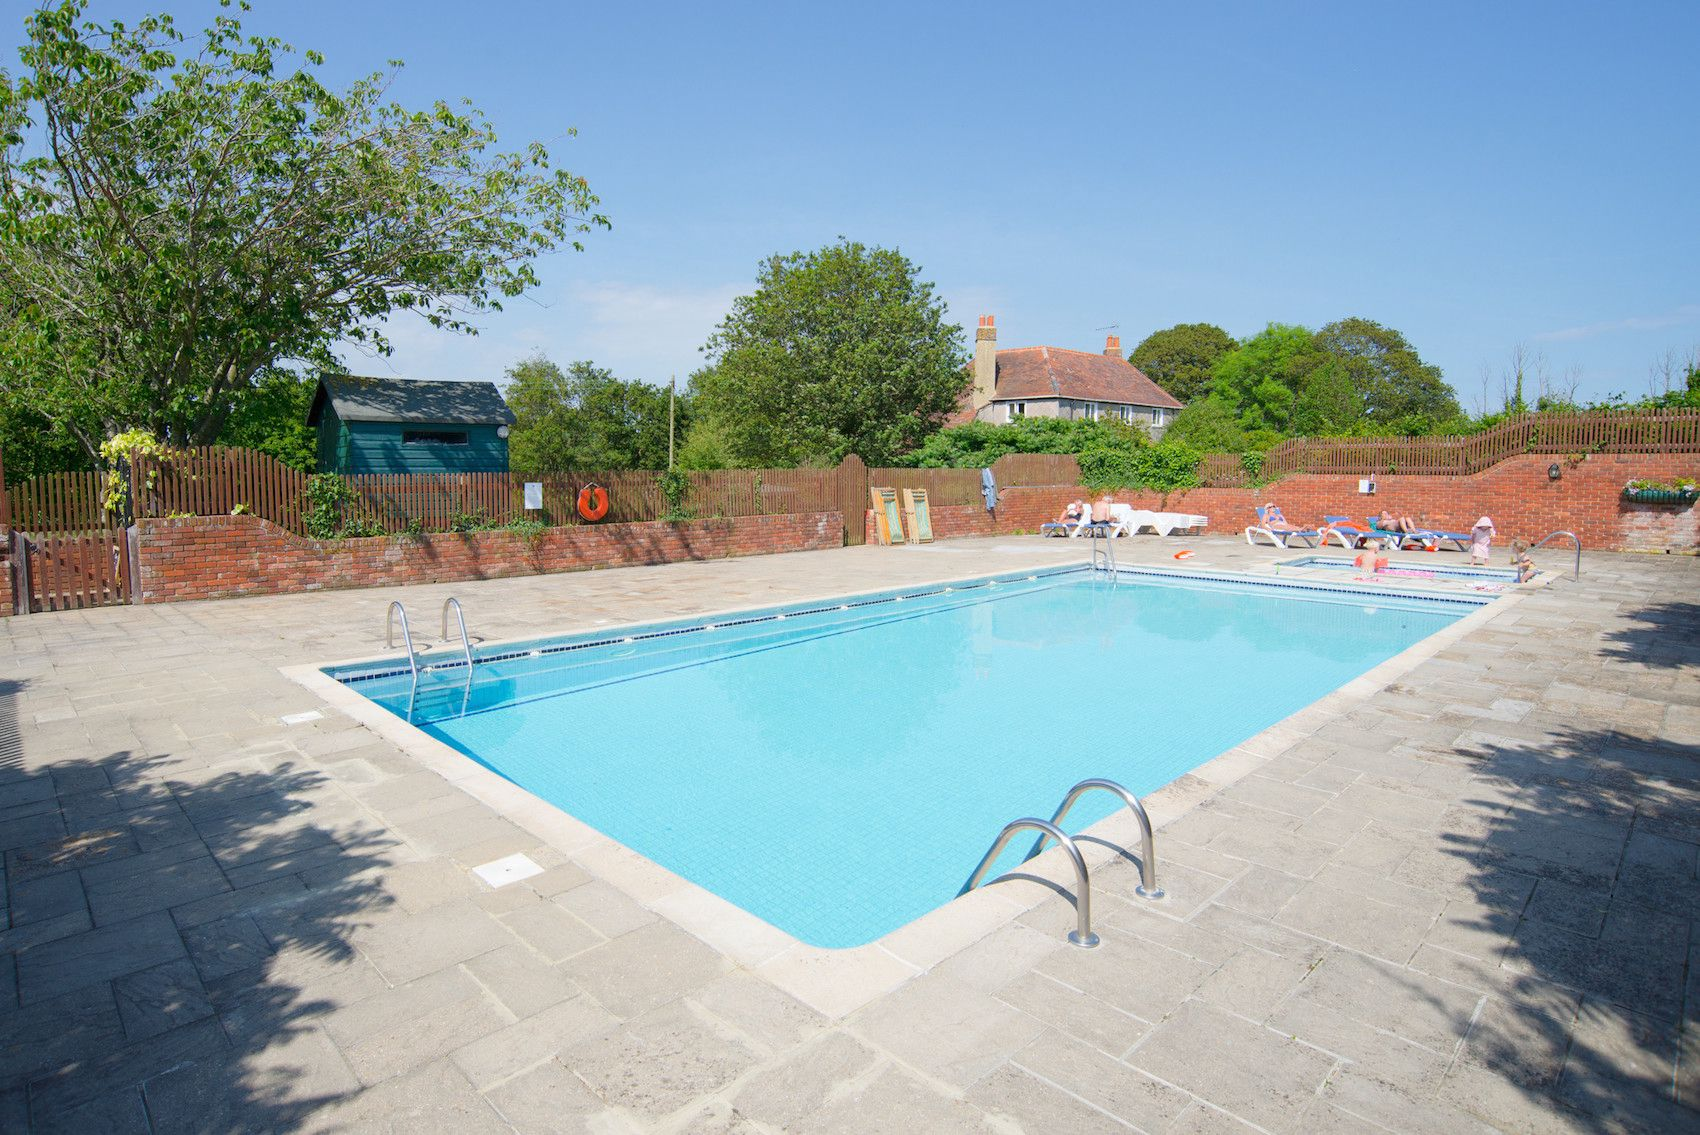 Campsites with swimming pools uk Campsites in poole with swimming pool